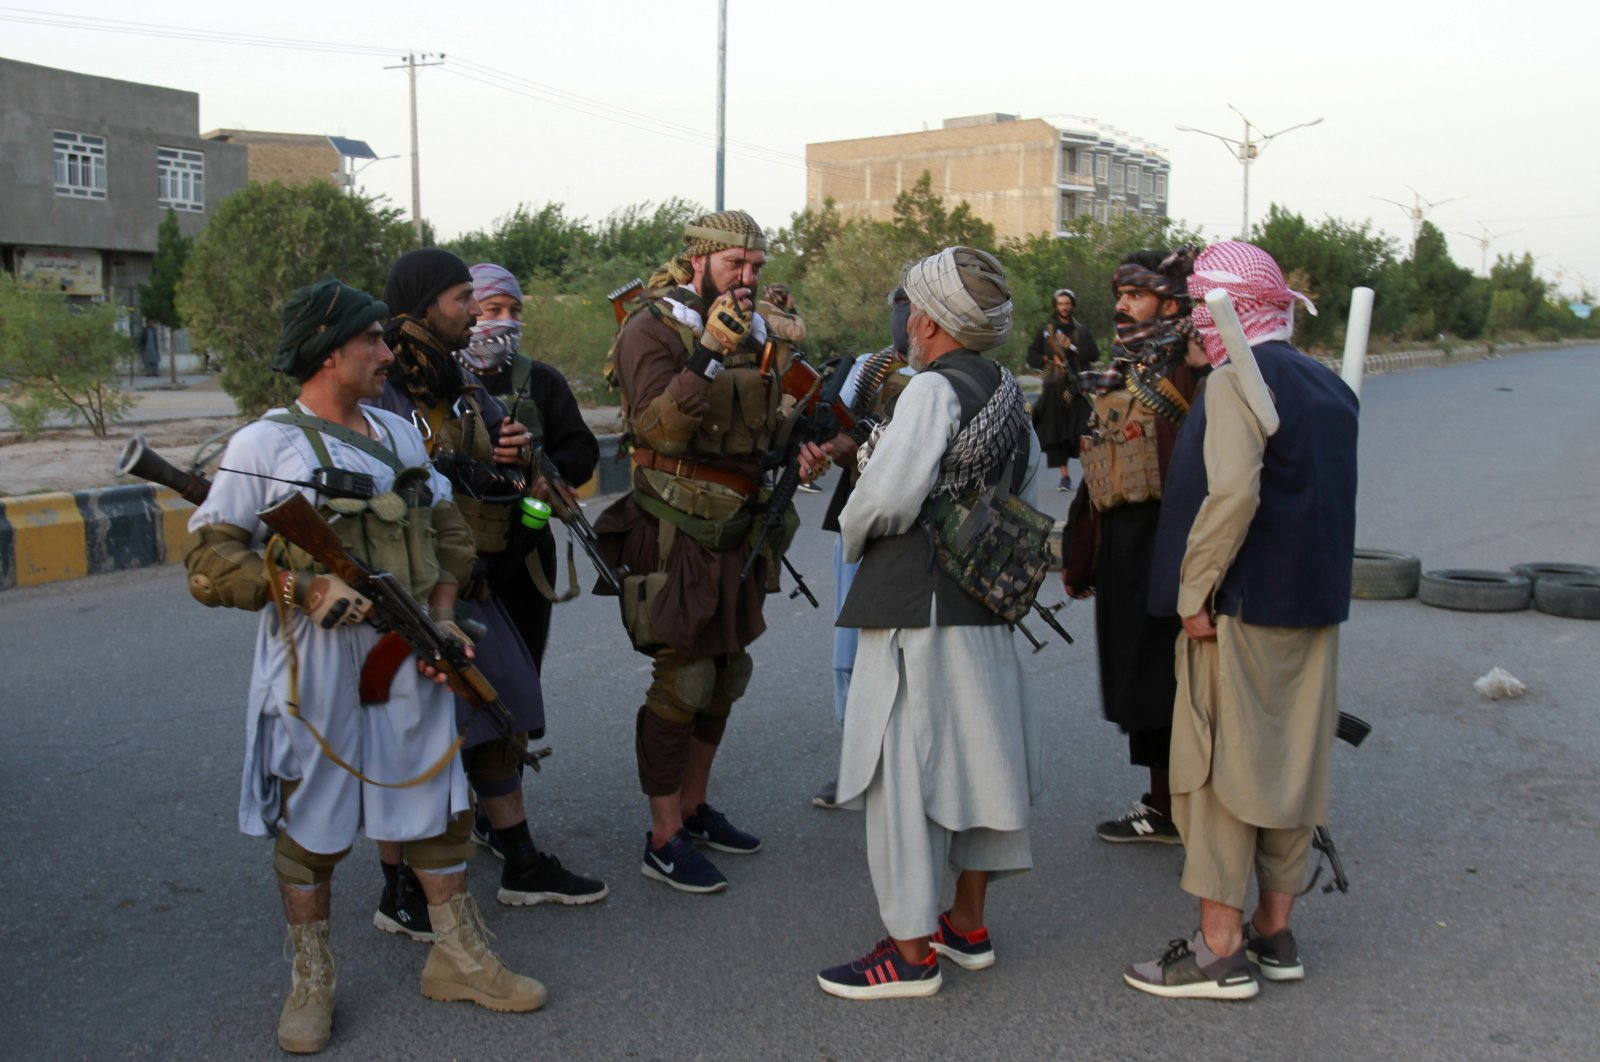 Private militia loyal to Ismail Khan, the former Mujahideen commander, talks with each others and patrols after security forces took back control of parts of Herat city following fighting between Taliban and Afghan security forces in Herat province, west of Kabul, Afghanistan, Aug. 6, 2021. (AP Photo)